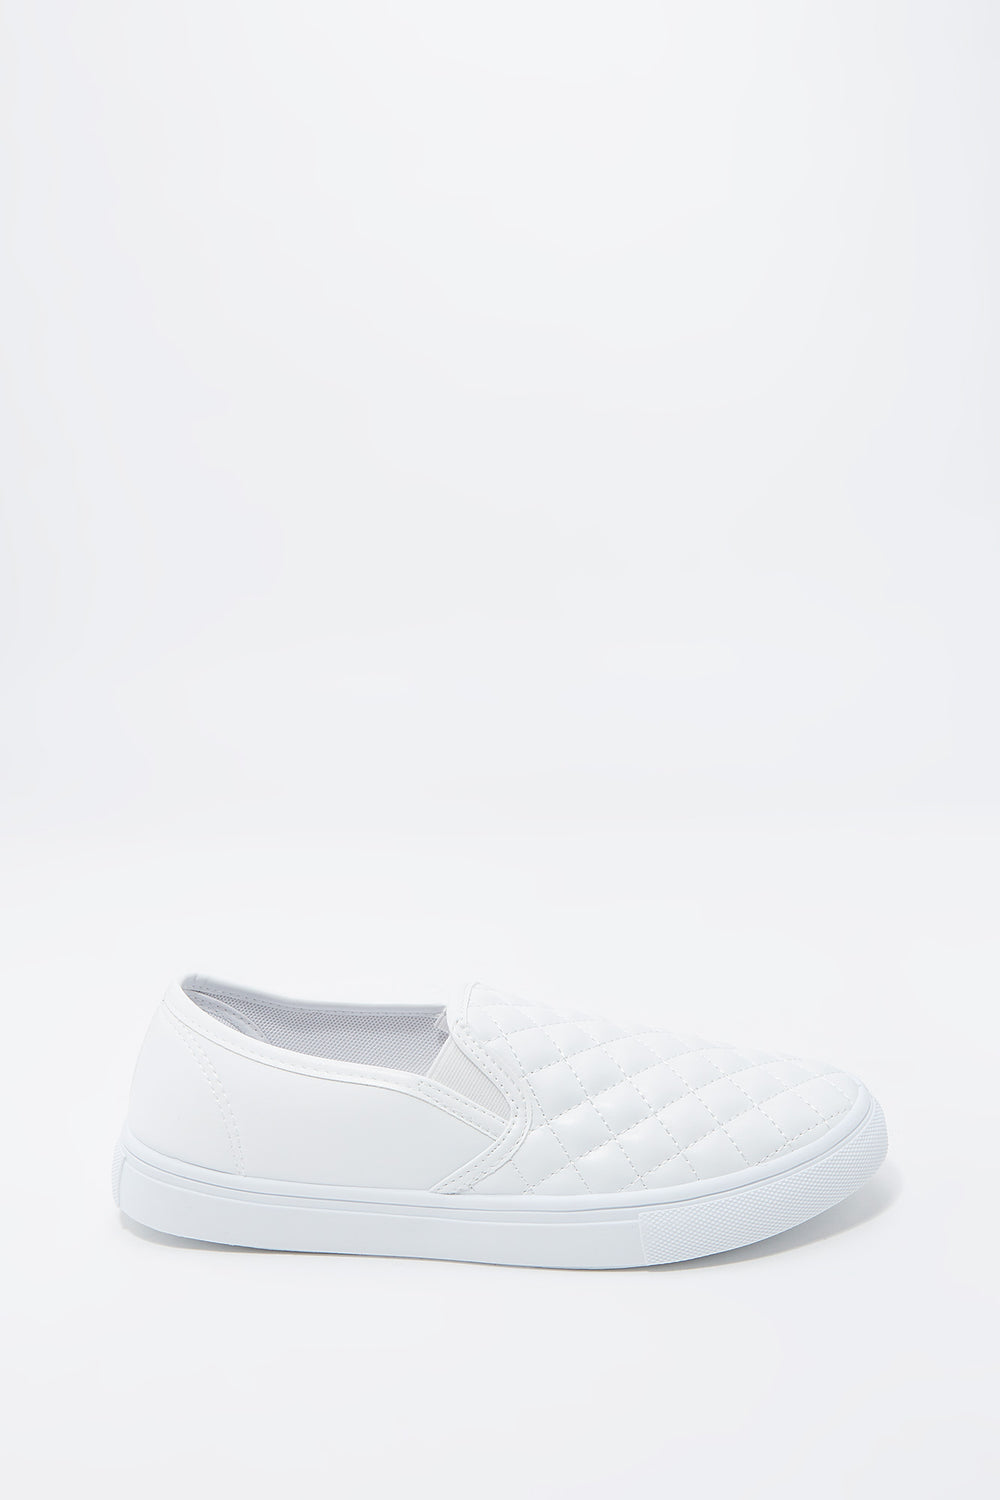 Quilted Faux-Leather Slip-On Sneaker White